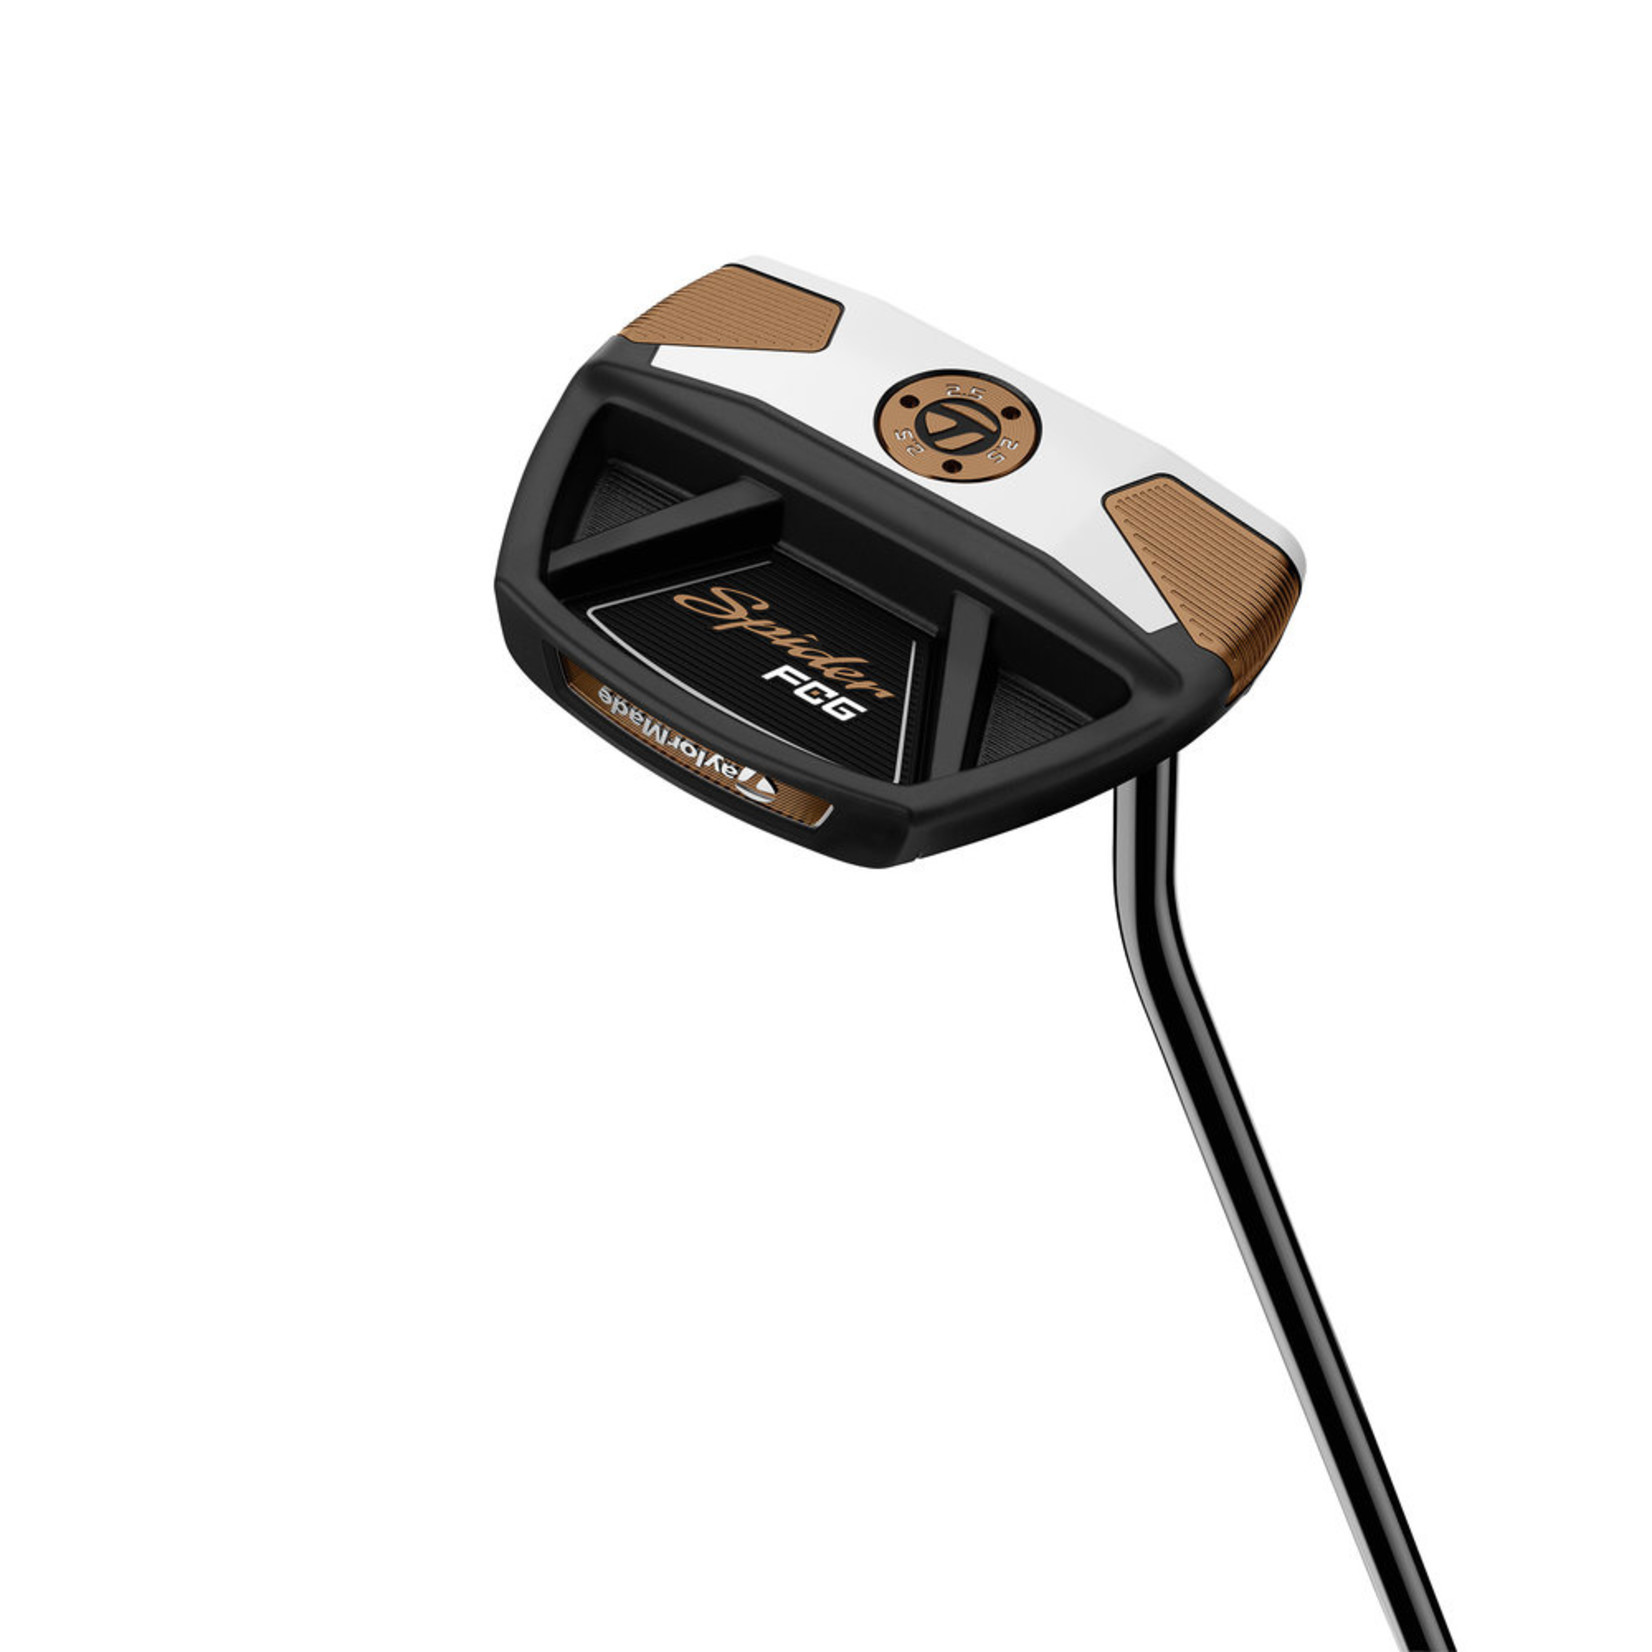 TaylorMade Taylormade Spider FCG Short Slant-Blk/Wht #3